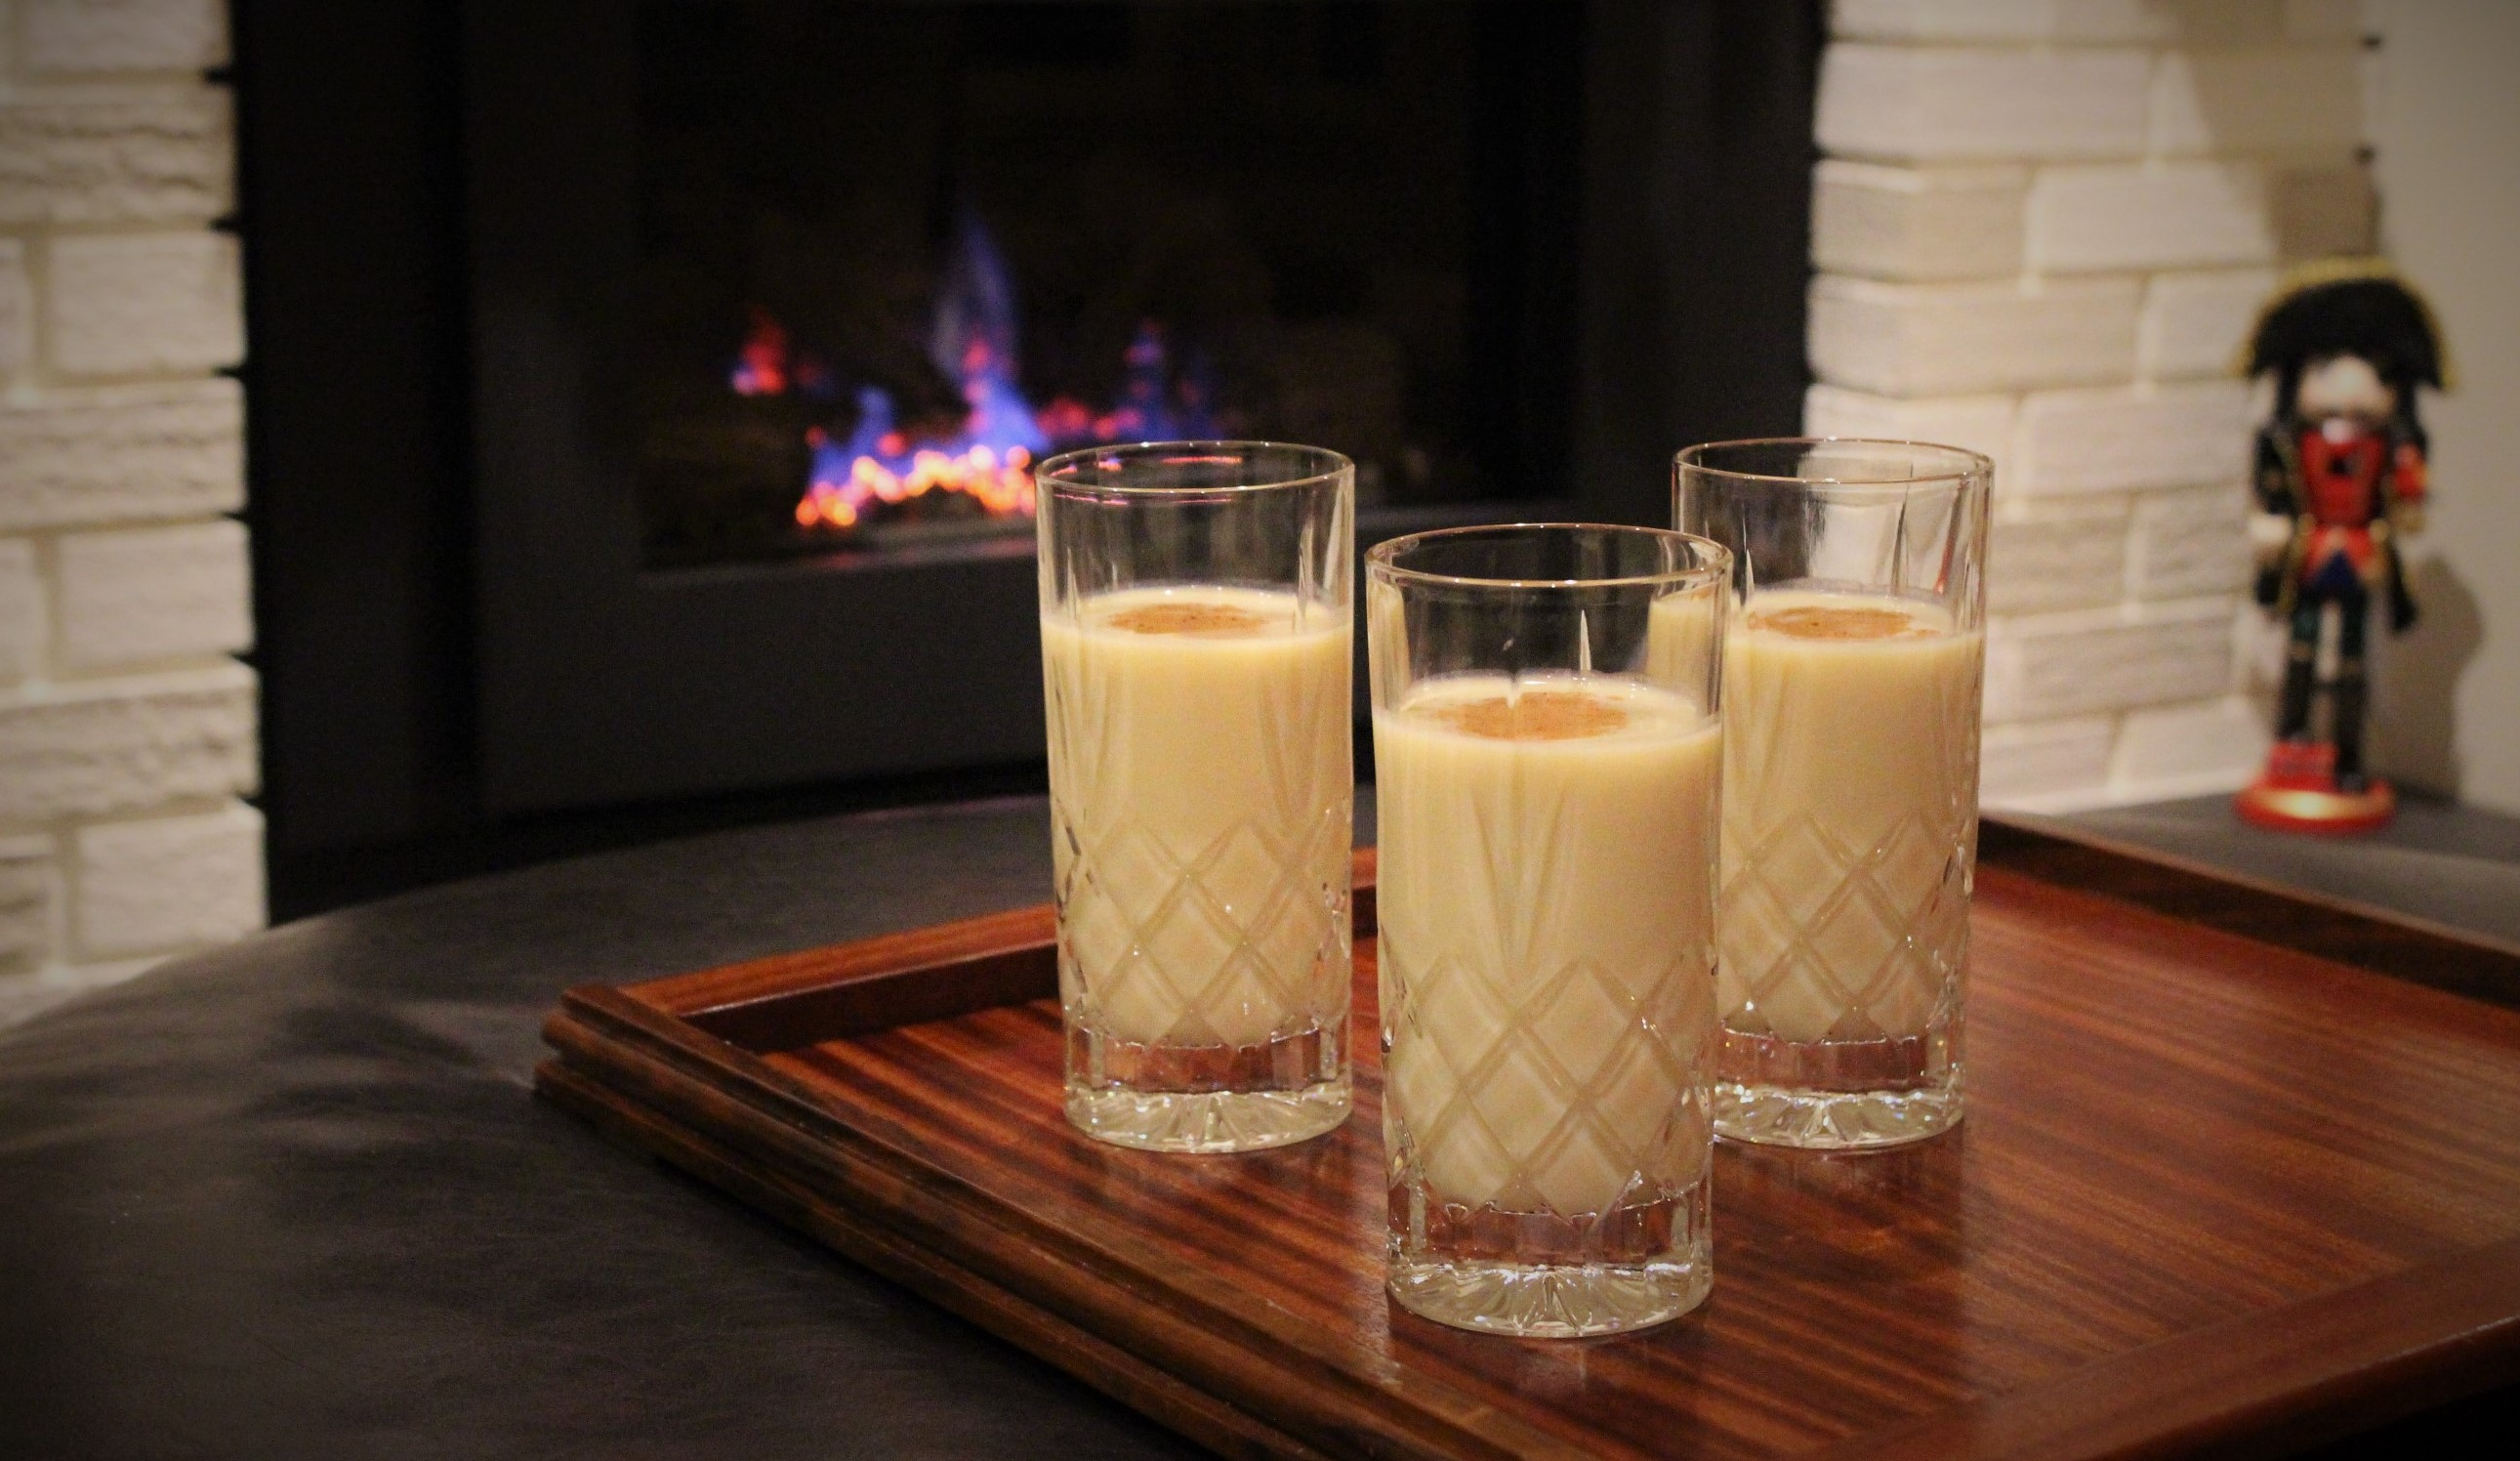 Fat Free Eggless Eggnog